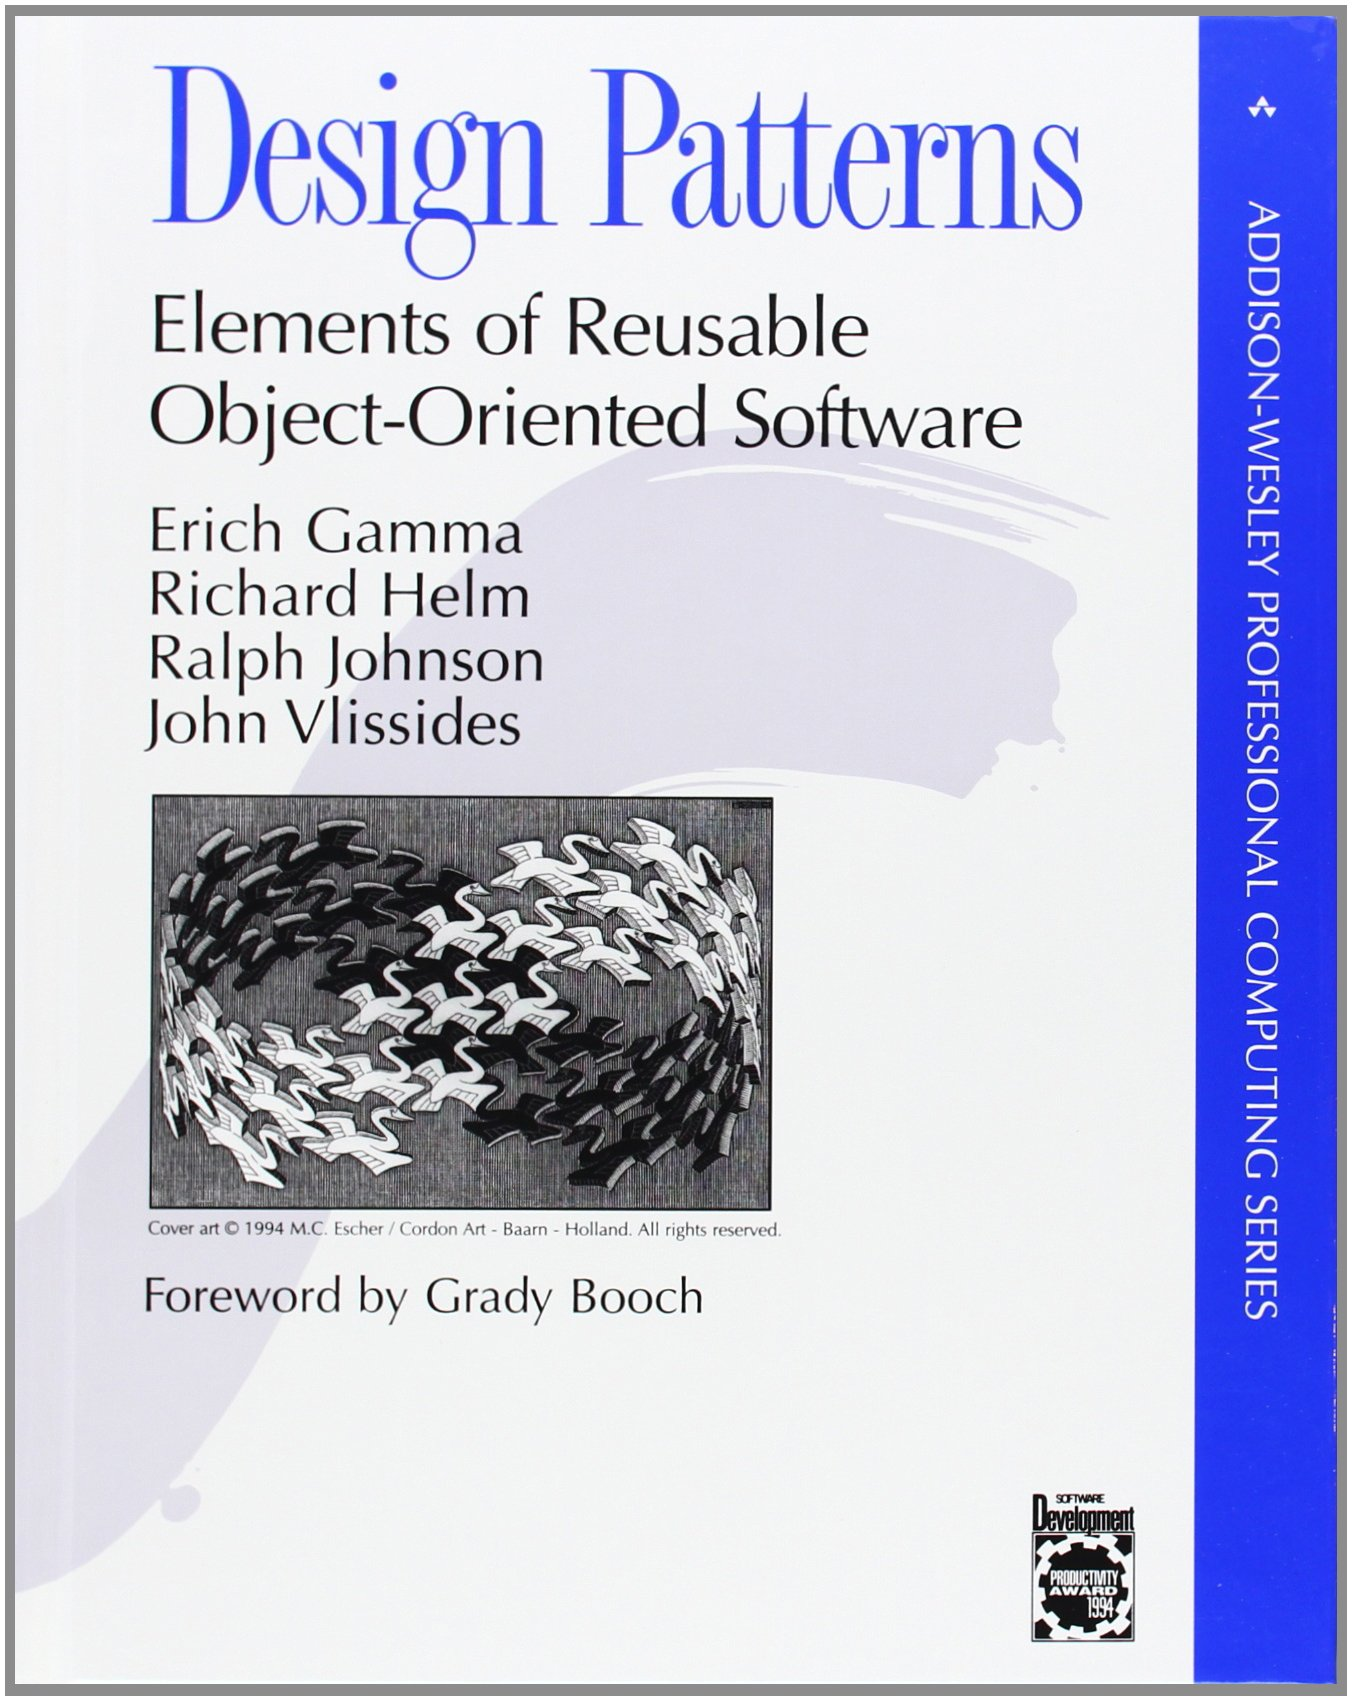 5 Best Design Patterns Book To Look For Journaldev